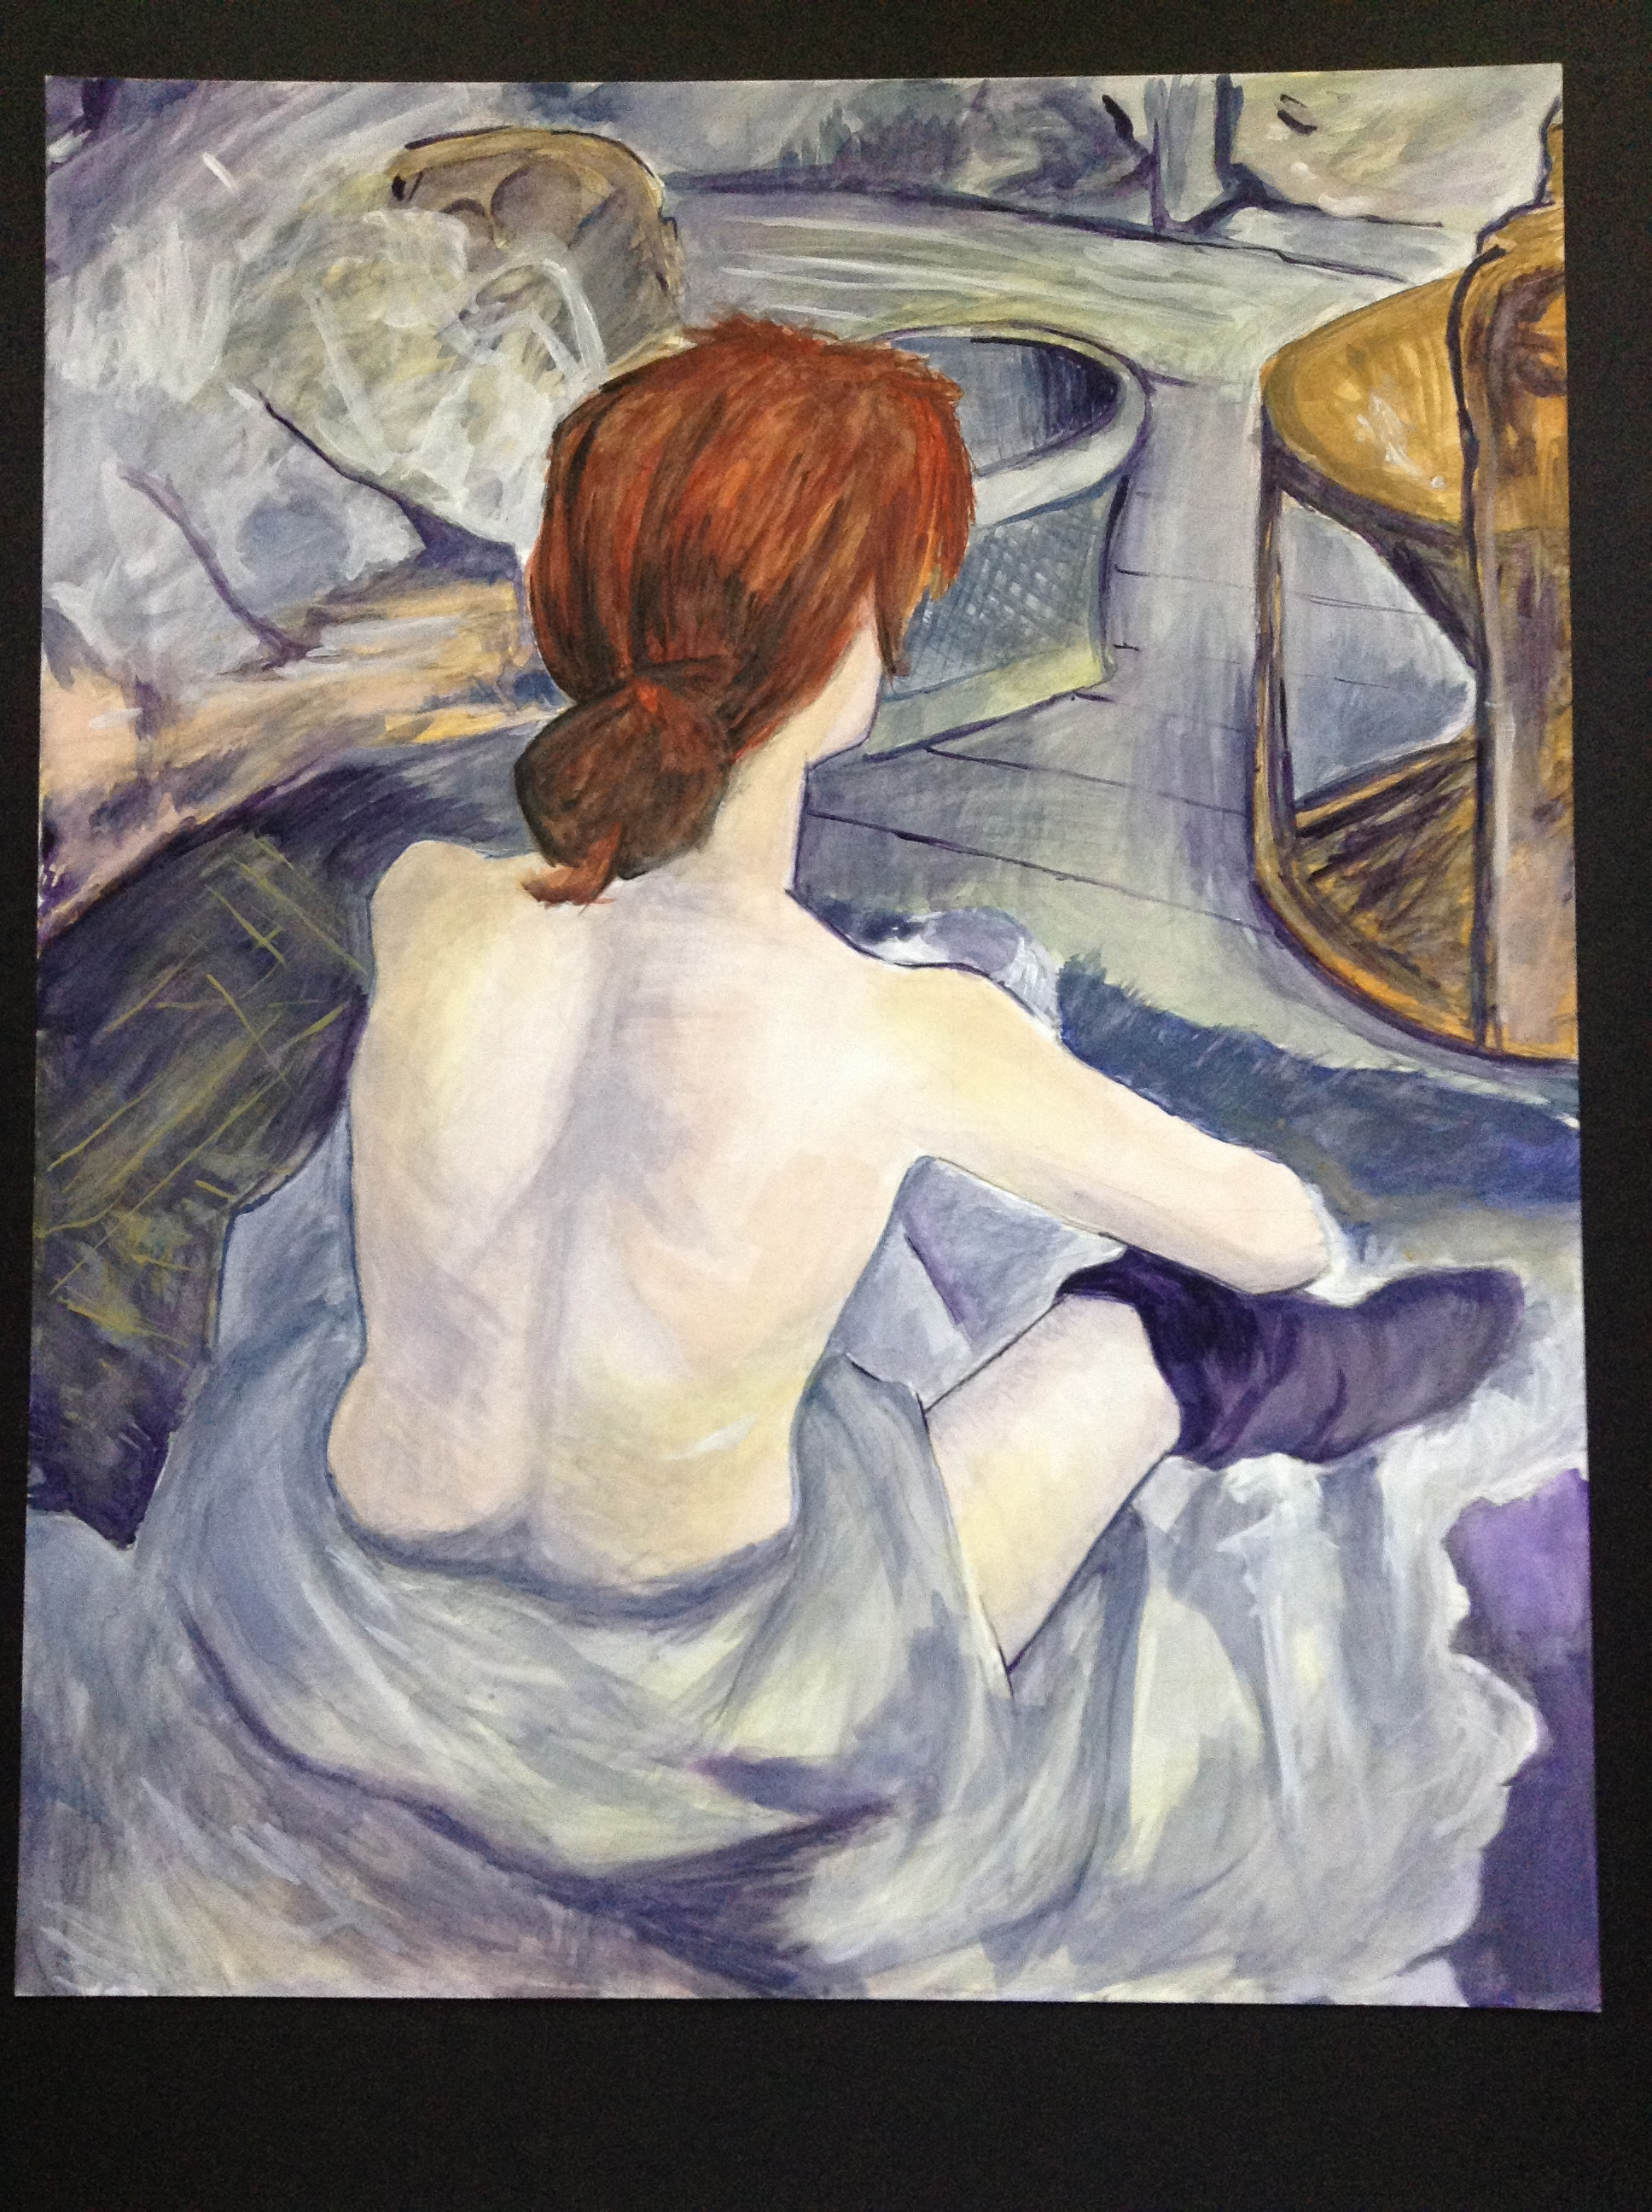 WatercolorCopy of a Toulouse Lautrec